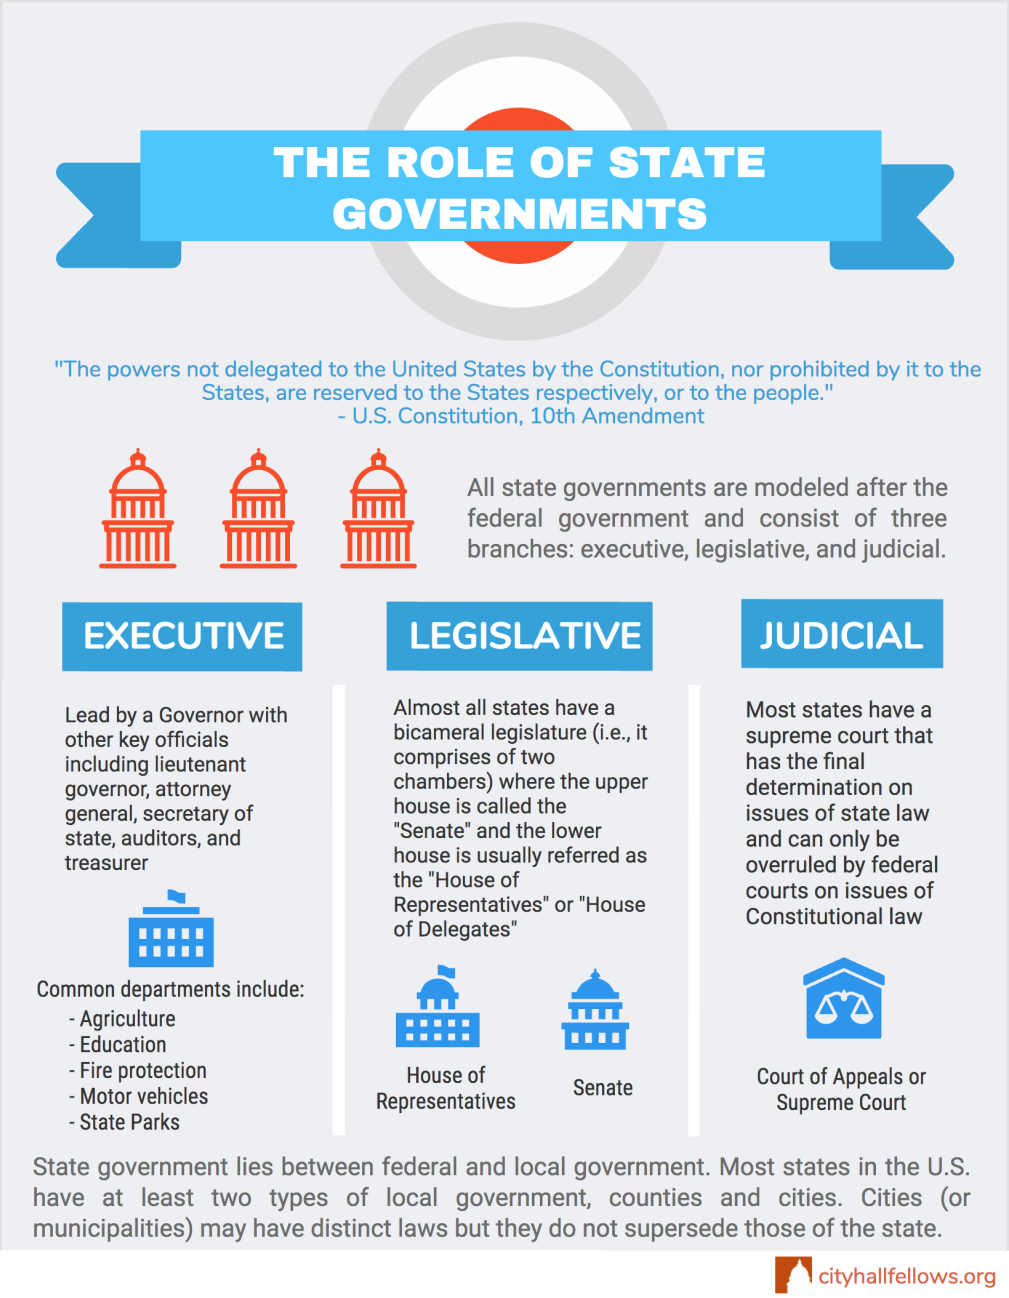 The Role of State Governments